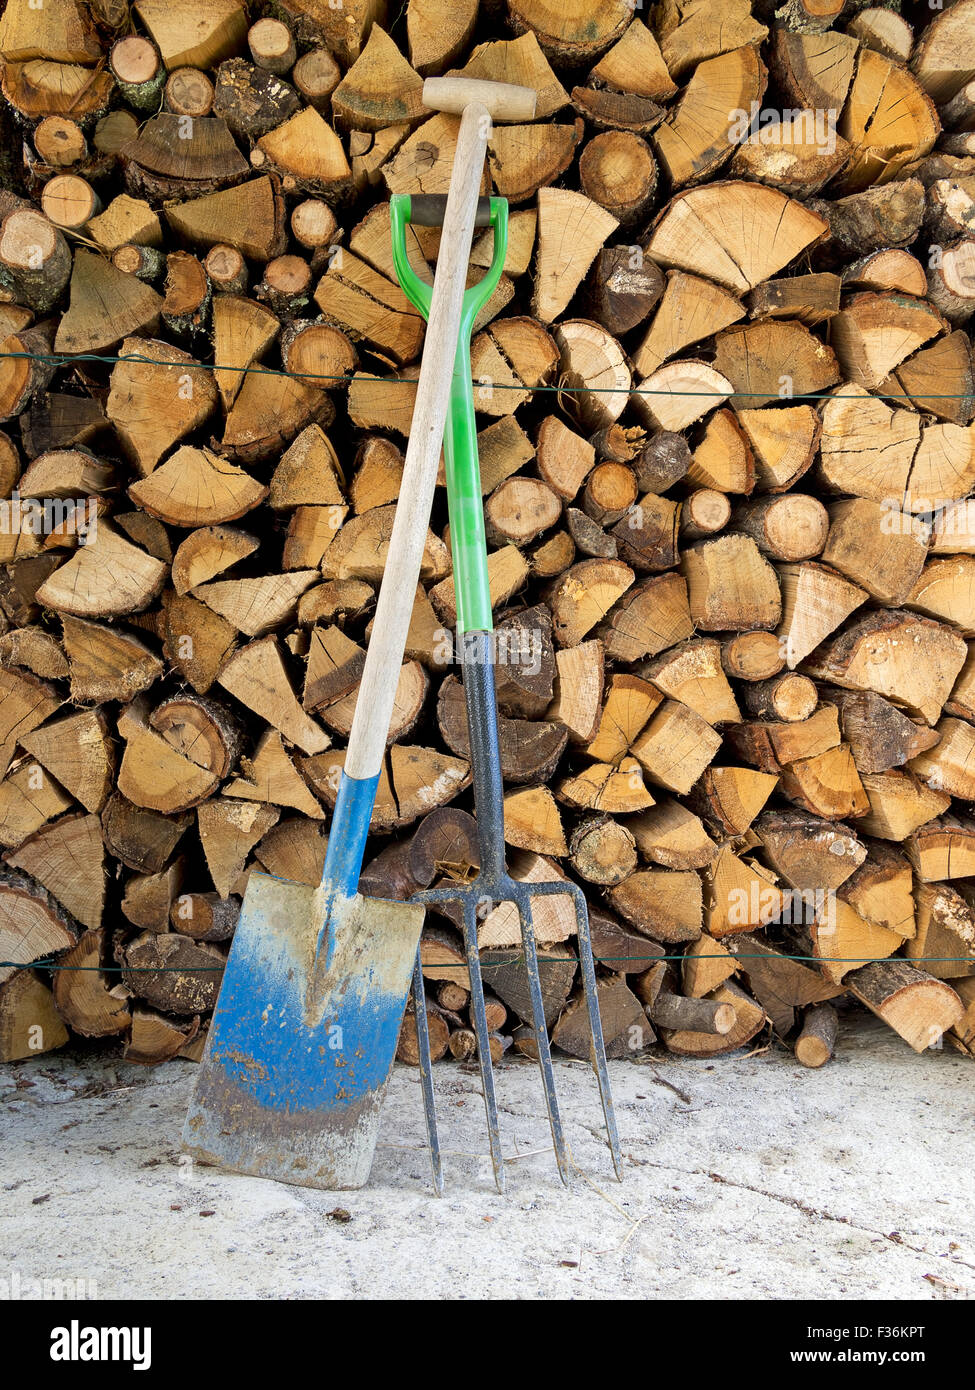 Garden spade, fork and wood for winter heating. Off grid lifestyle reality. - Stock Image